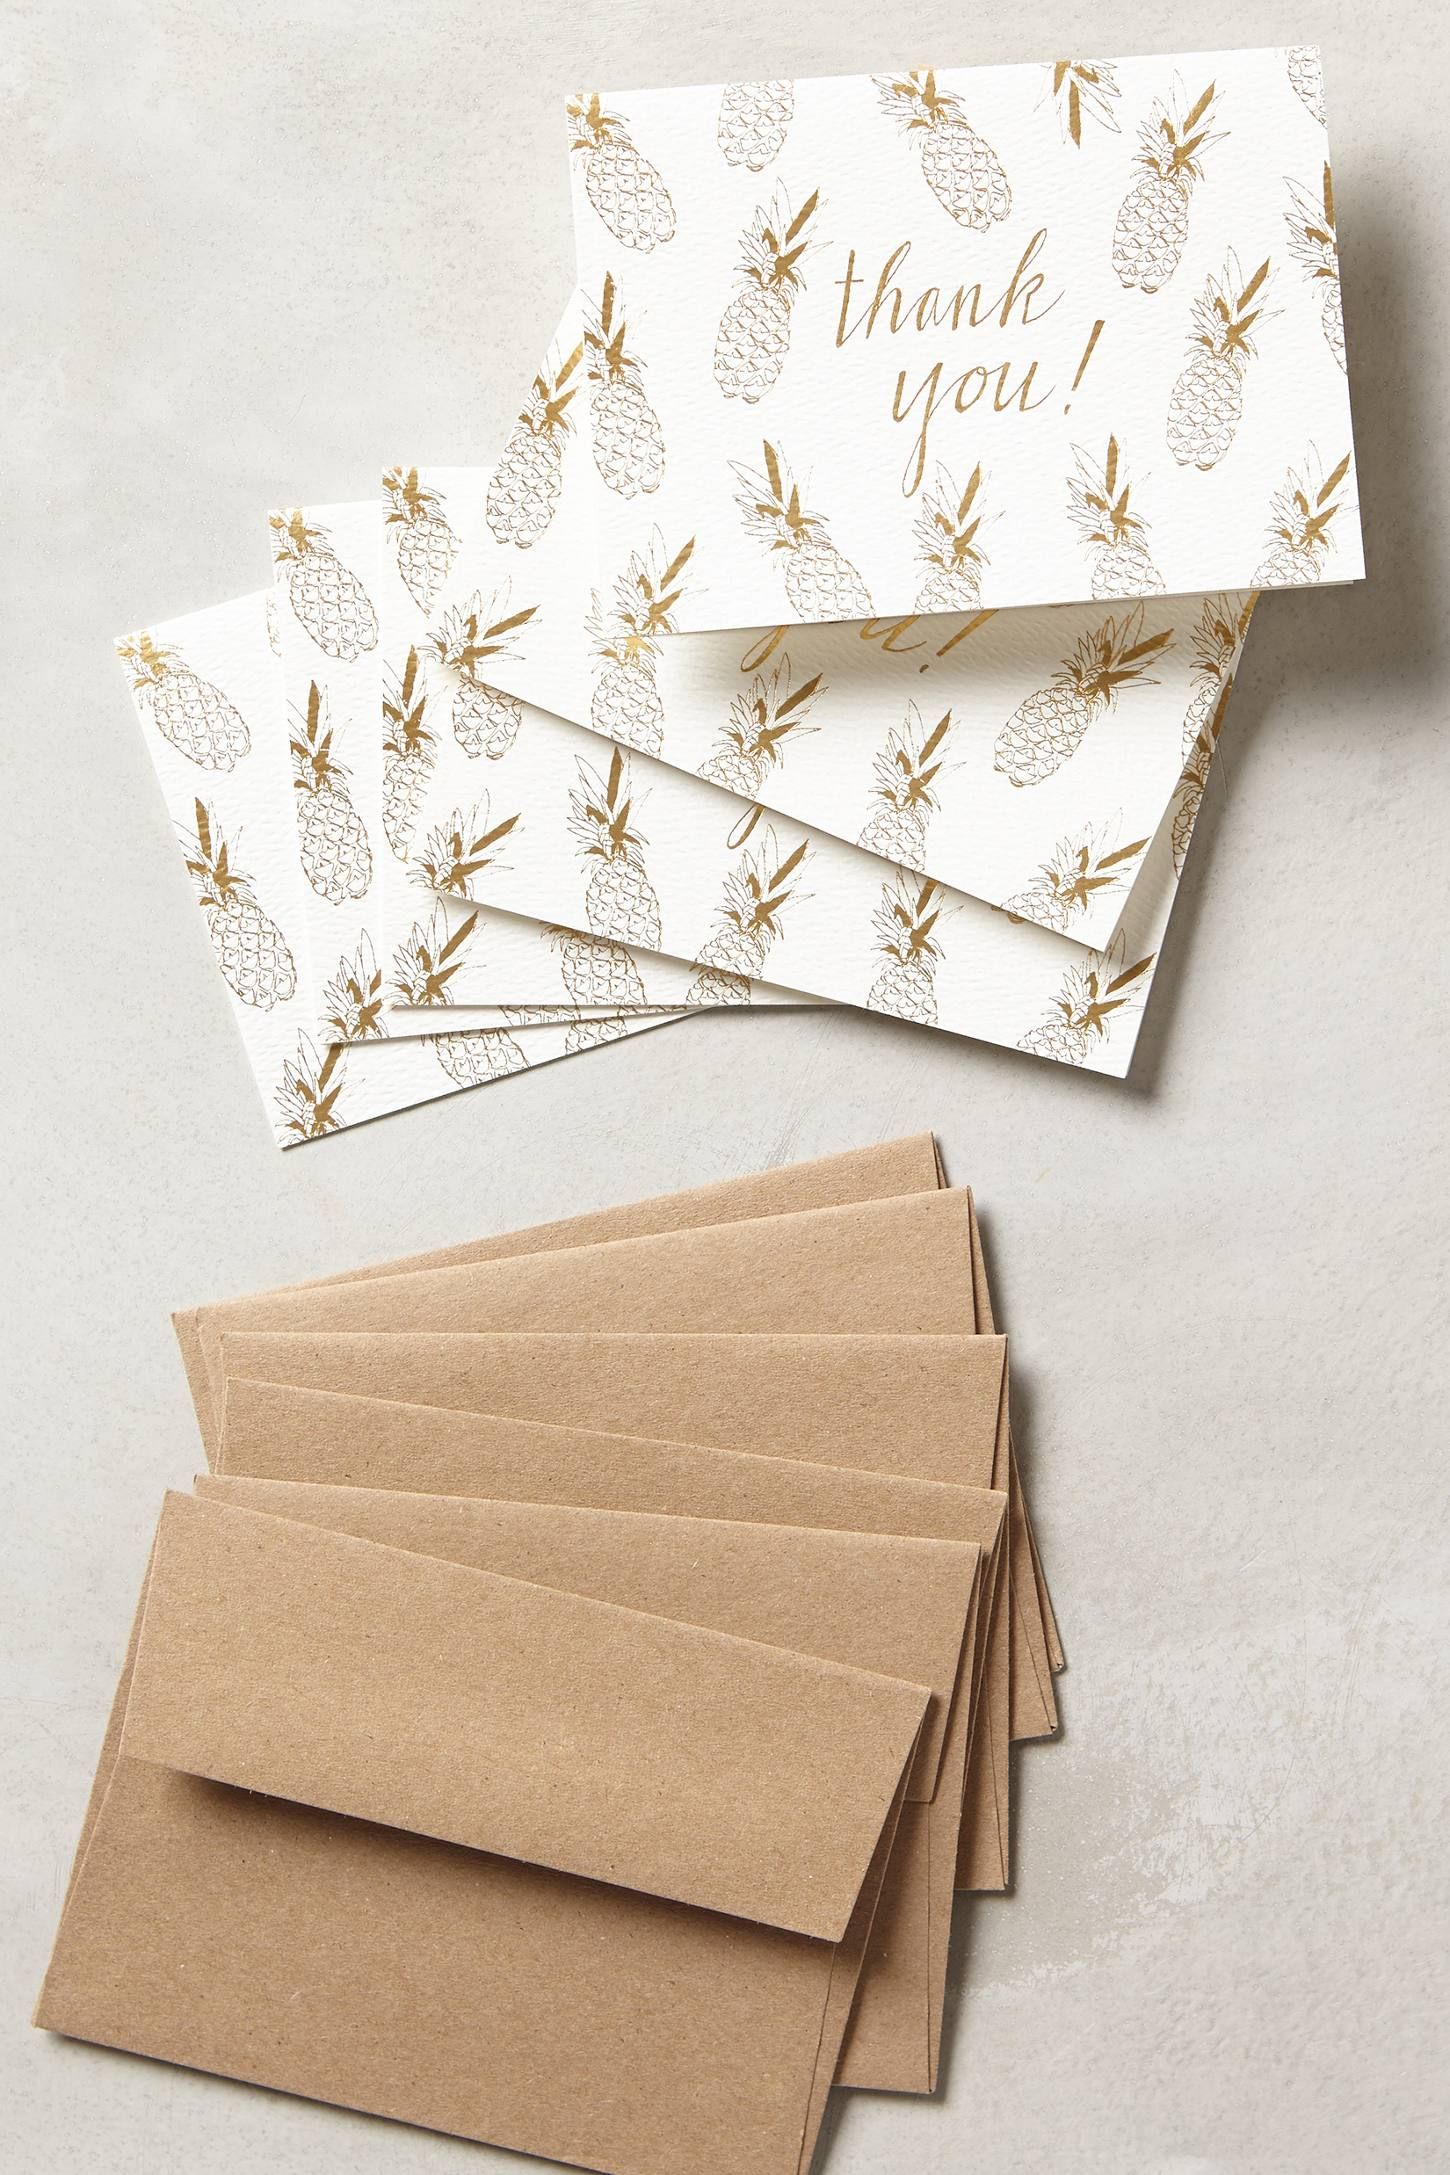 """&lt;p&gt;Hartland Brooklyn Pineapple Thank You Cards, $18; &lt;a href=""""http://www.anthropologie.com/anthro/product/33653882.jsp?cm_vc=SEARCH_RESULTS""""&gt;anythropologie.com&lt;/a&gt;&lt;/p&gt; &lt;p&gt; <!--EndFragment-->&lt;/p&gt;"""